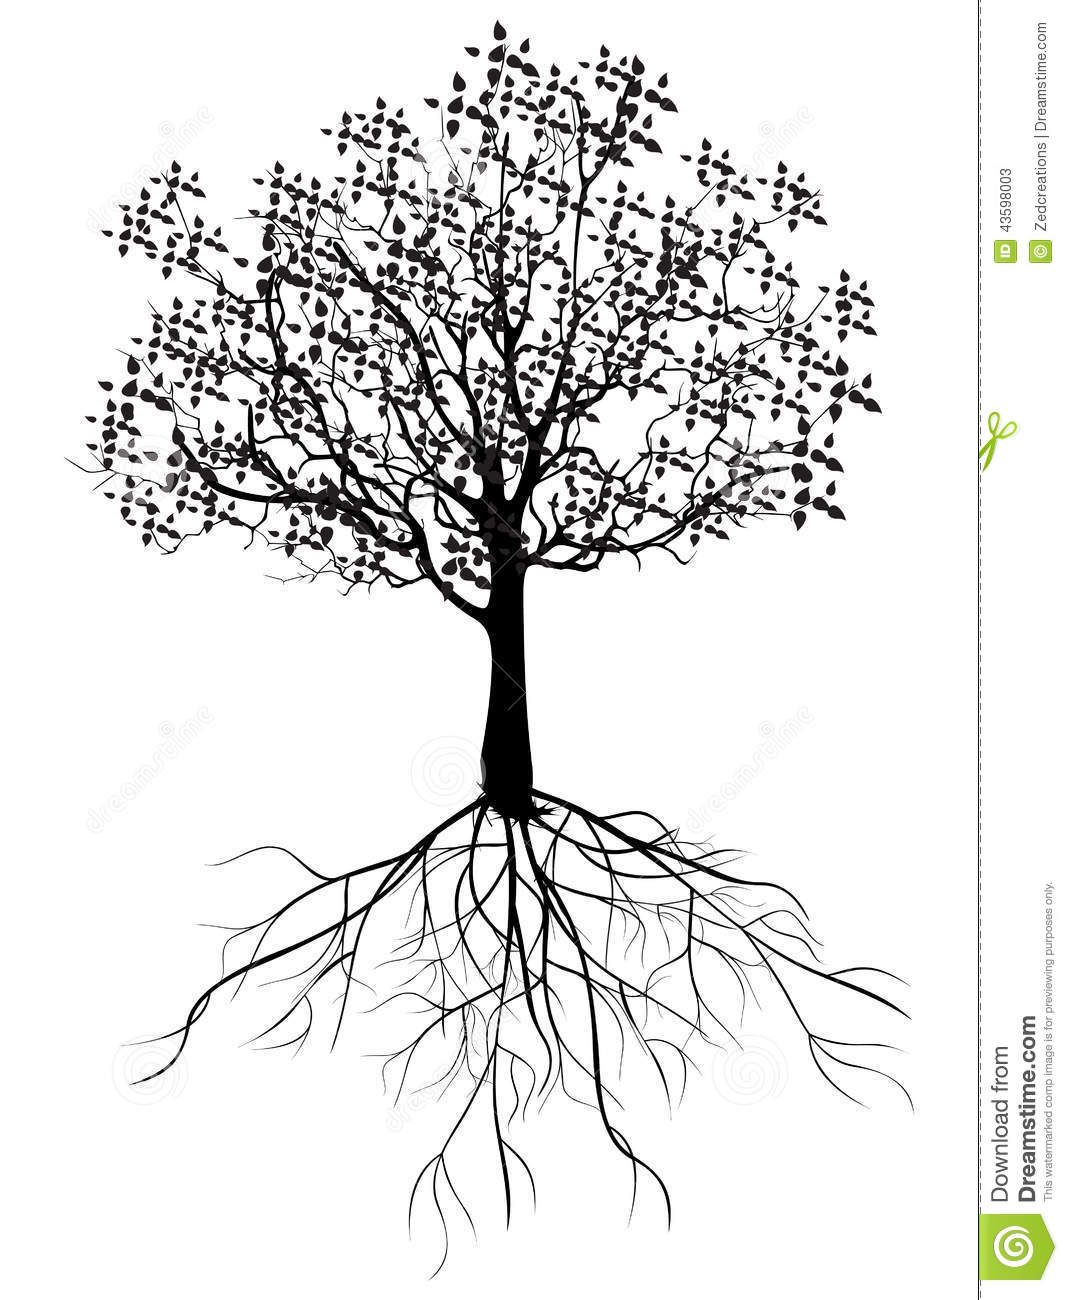 tree roots drawing clipart best filsonclub